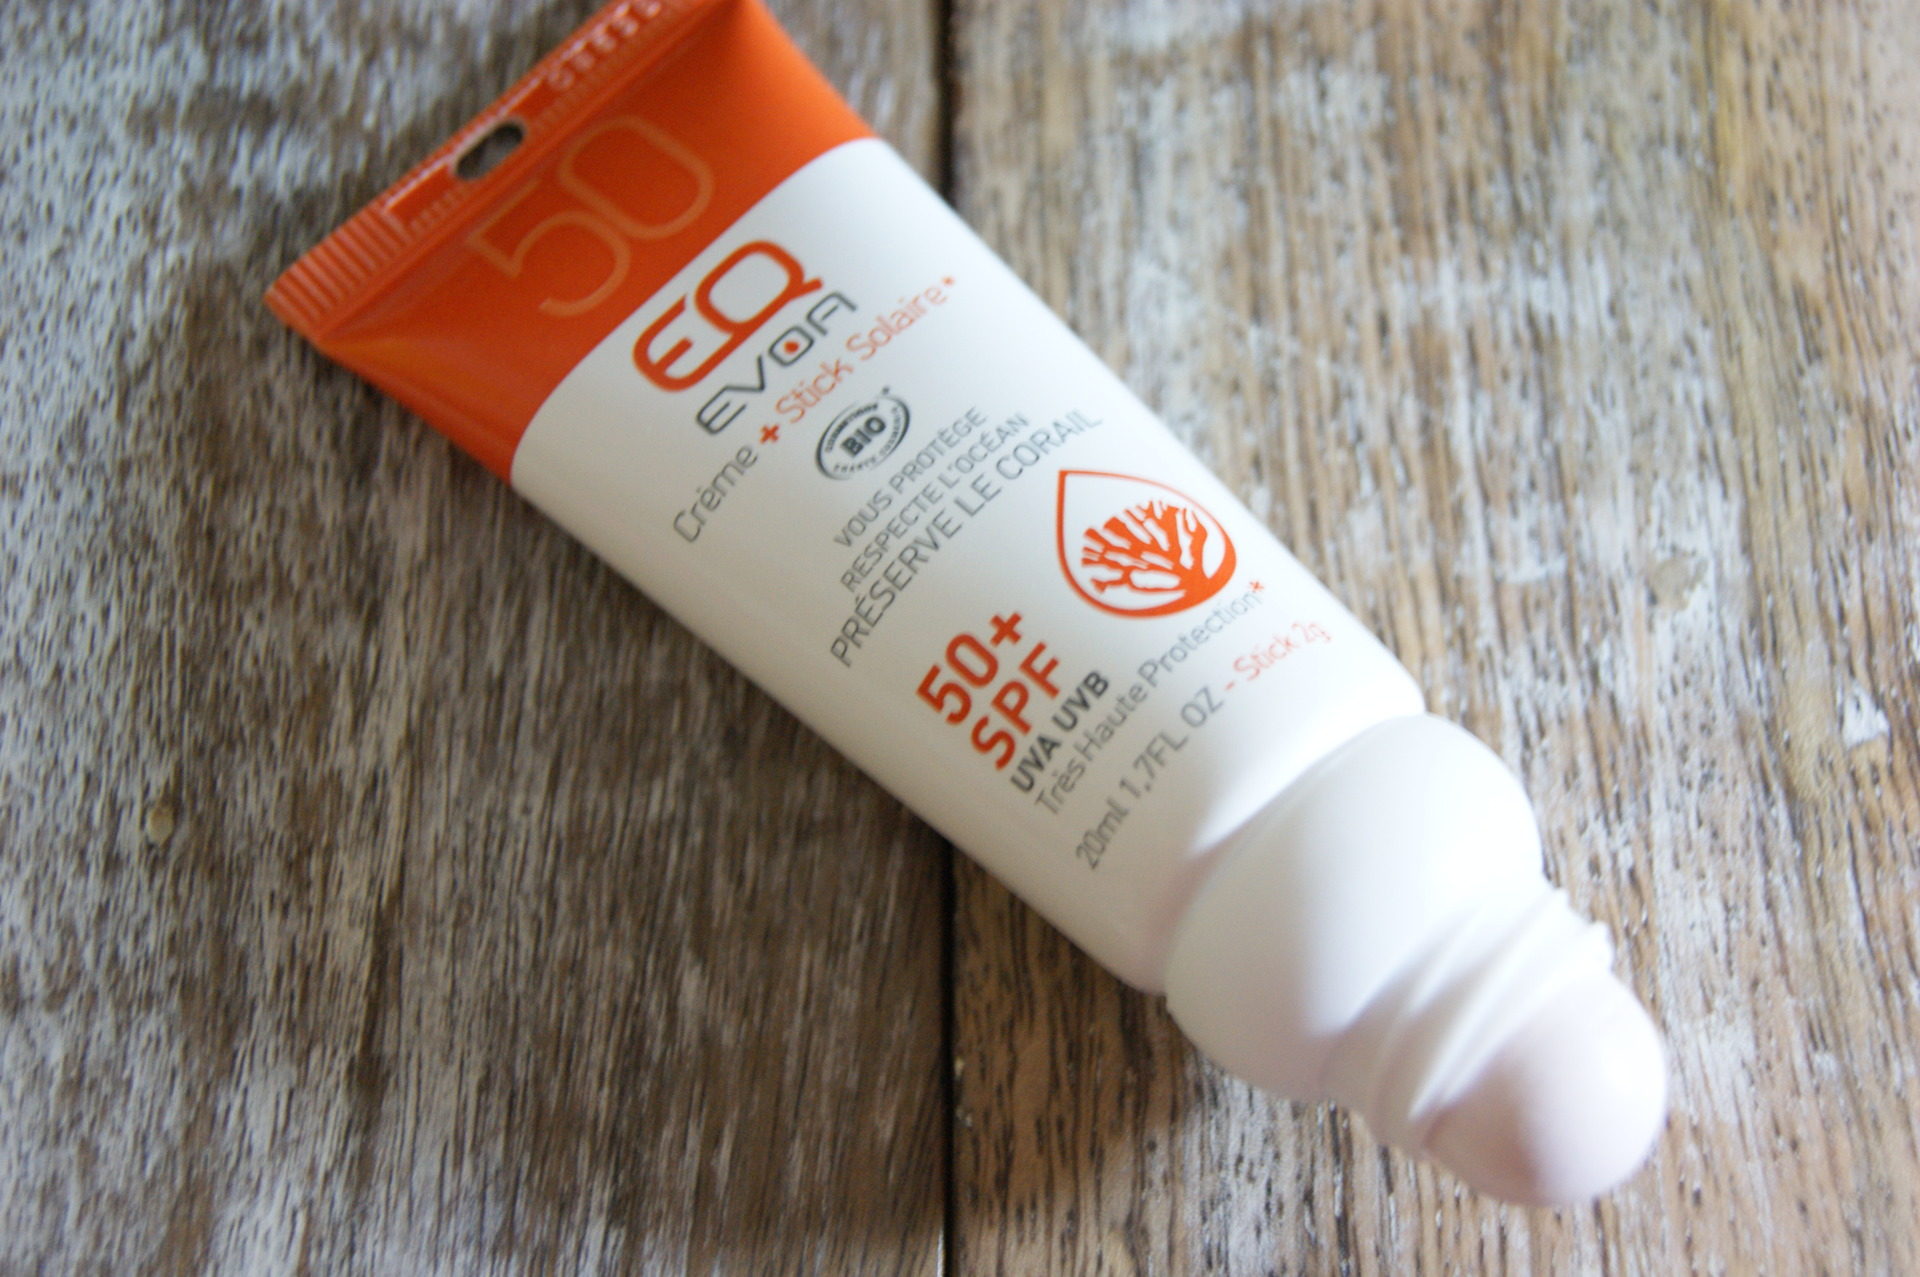 Eco Beauty - Organic Combi Stick Sunscreen